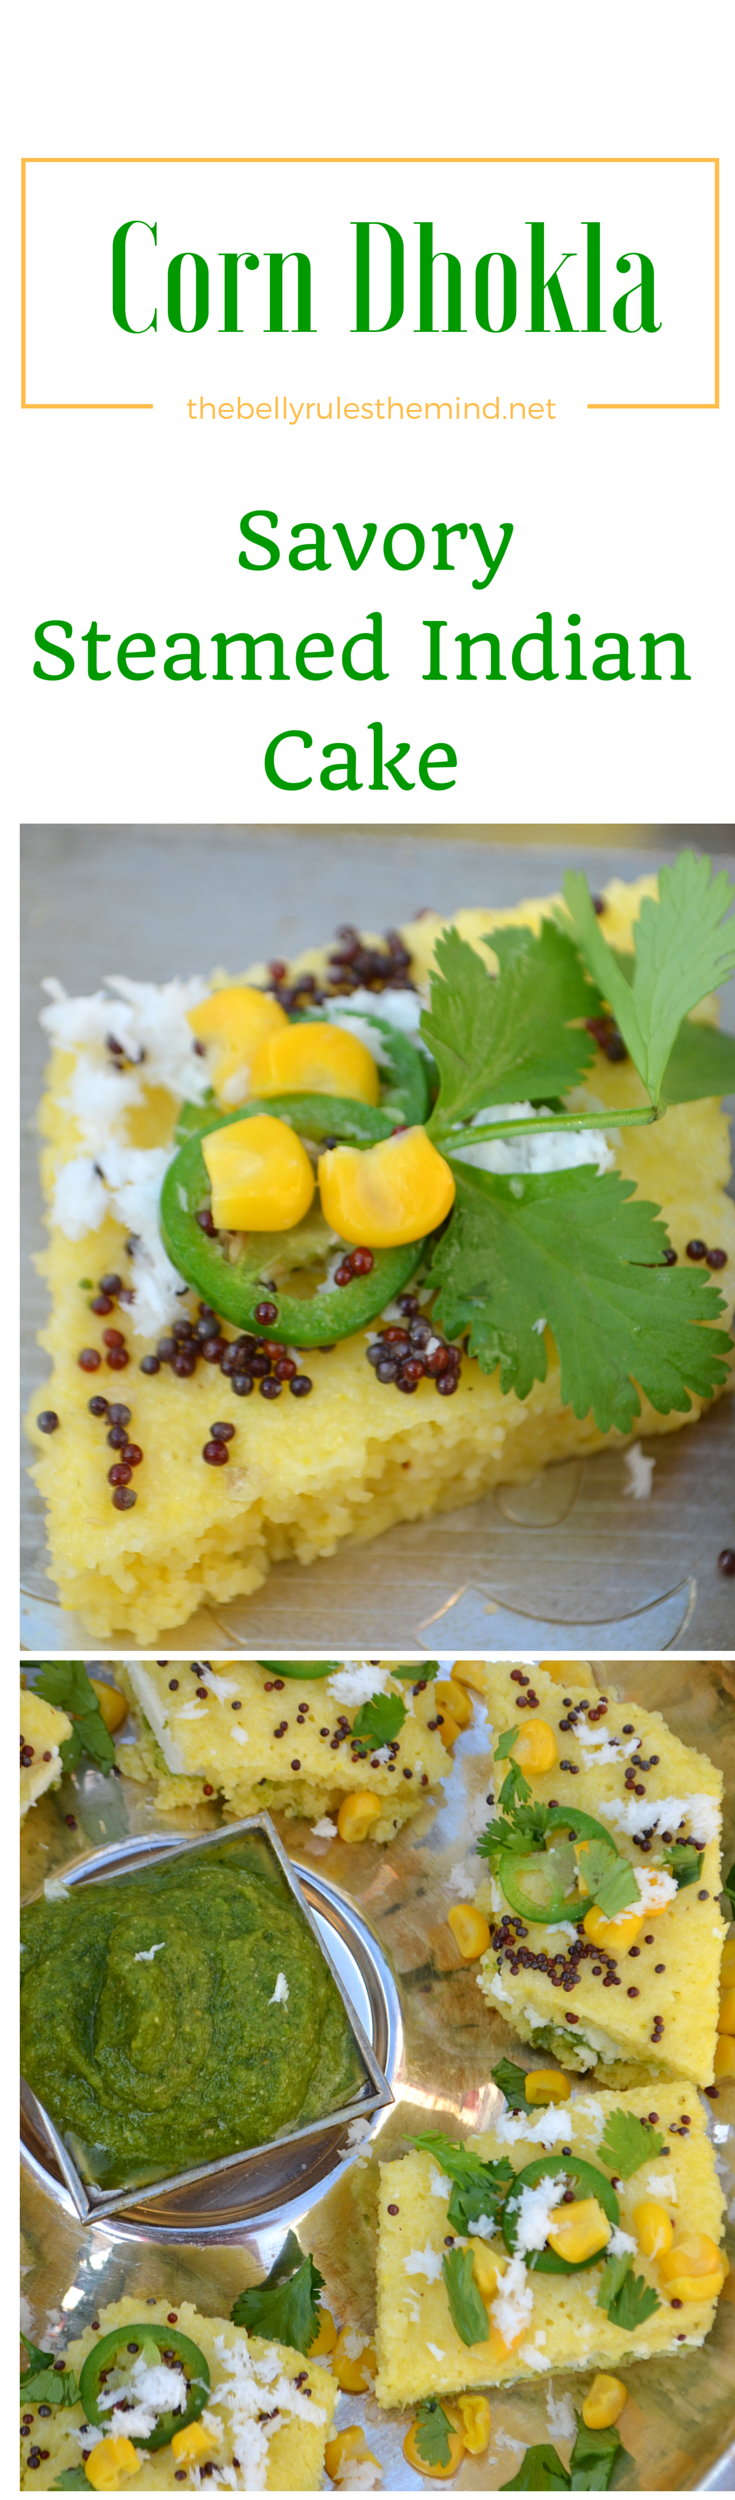 Instant corn dhokla recipe with step by step photos learn how to instant corn dhokla recipe with step by step photos learn how to make popular snack forumfinder Gallery